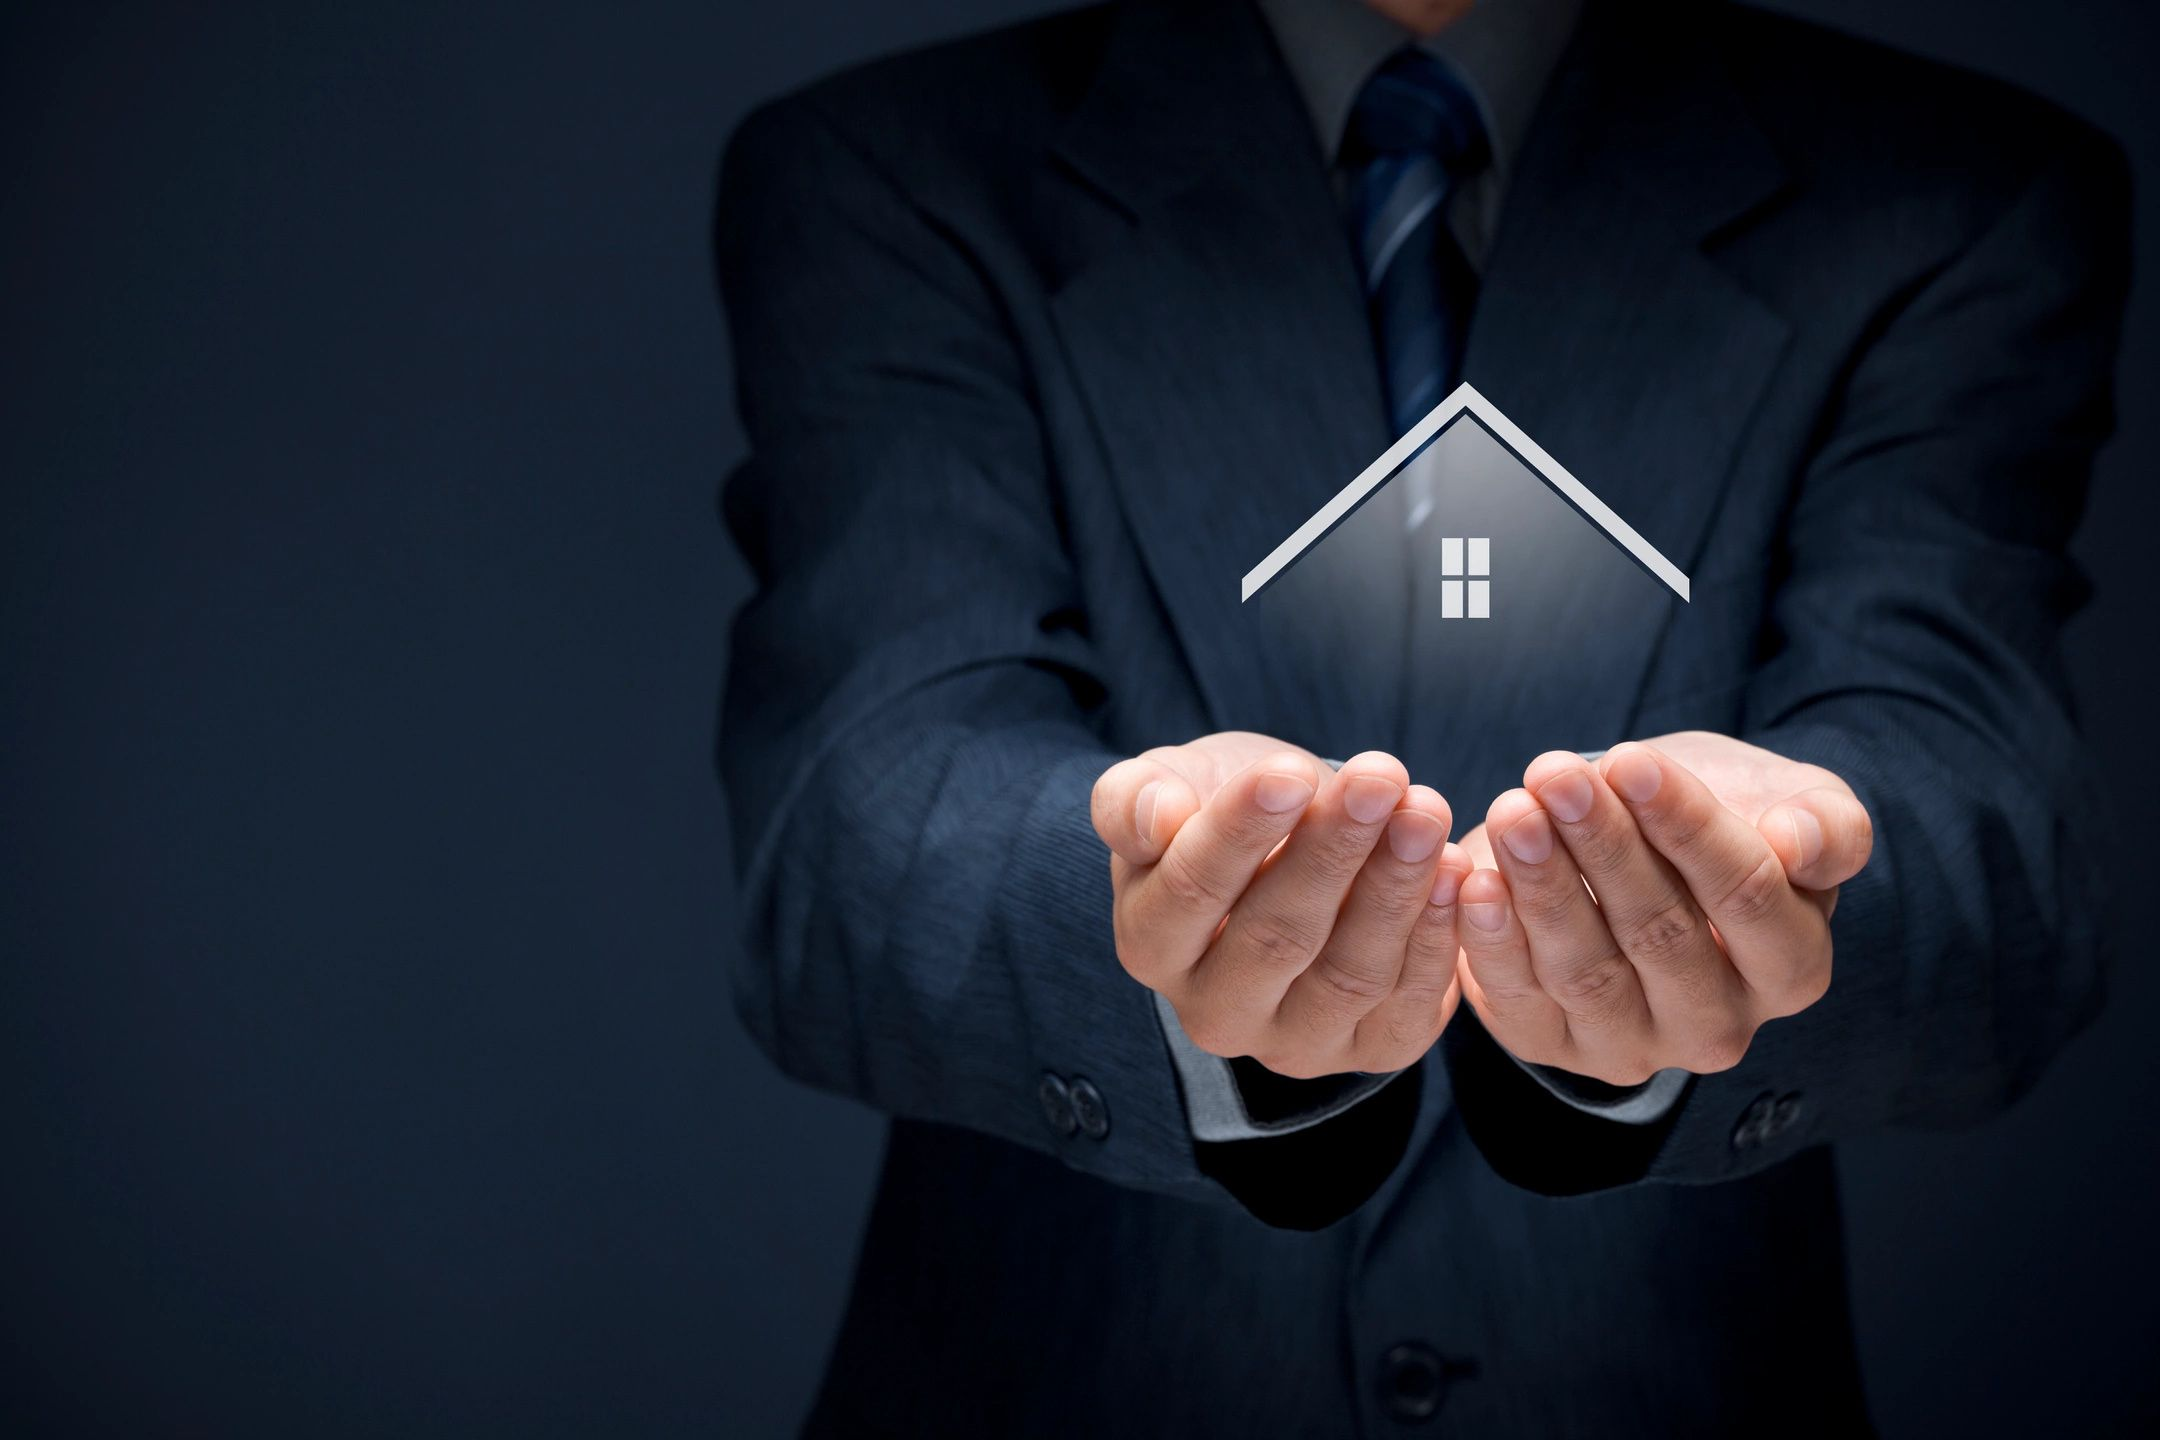 Why a career in Real Estate?